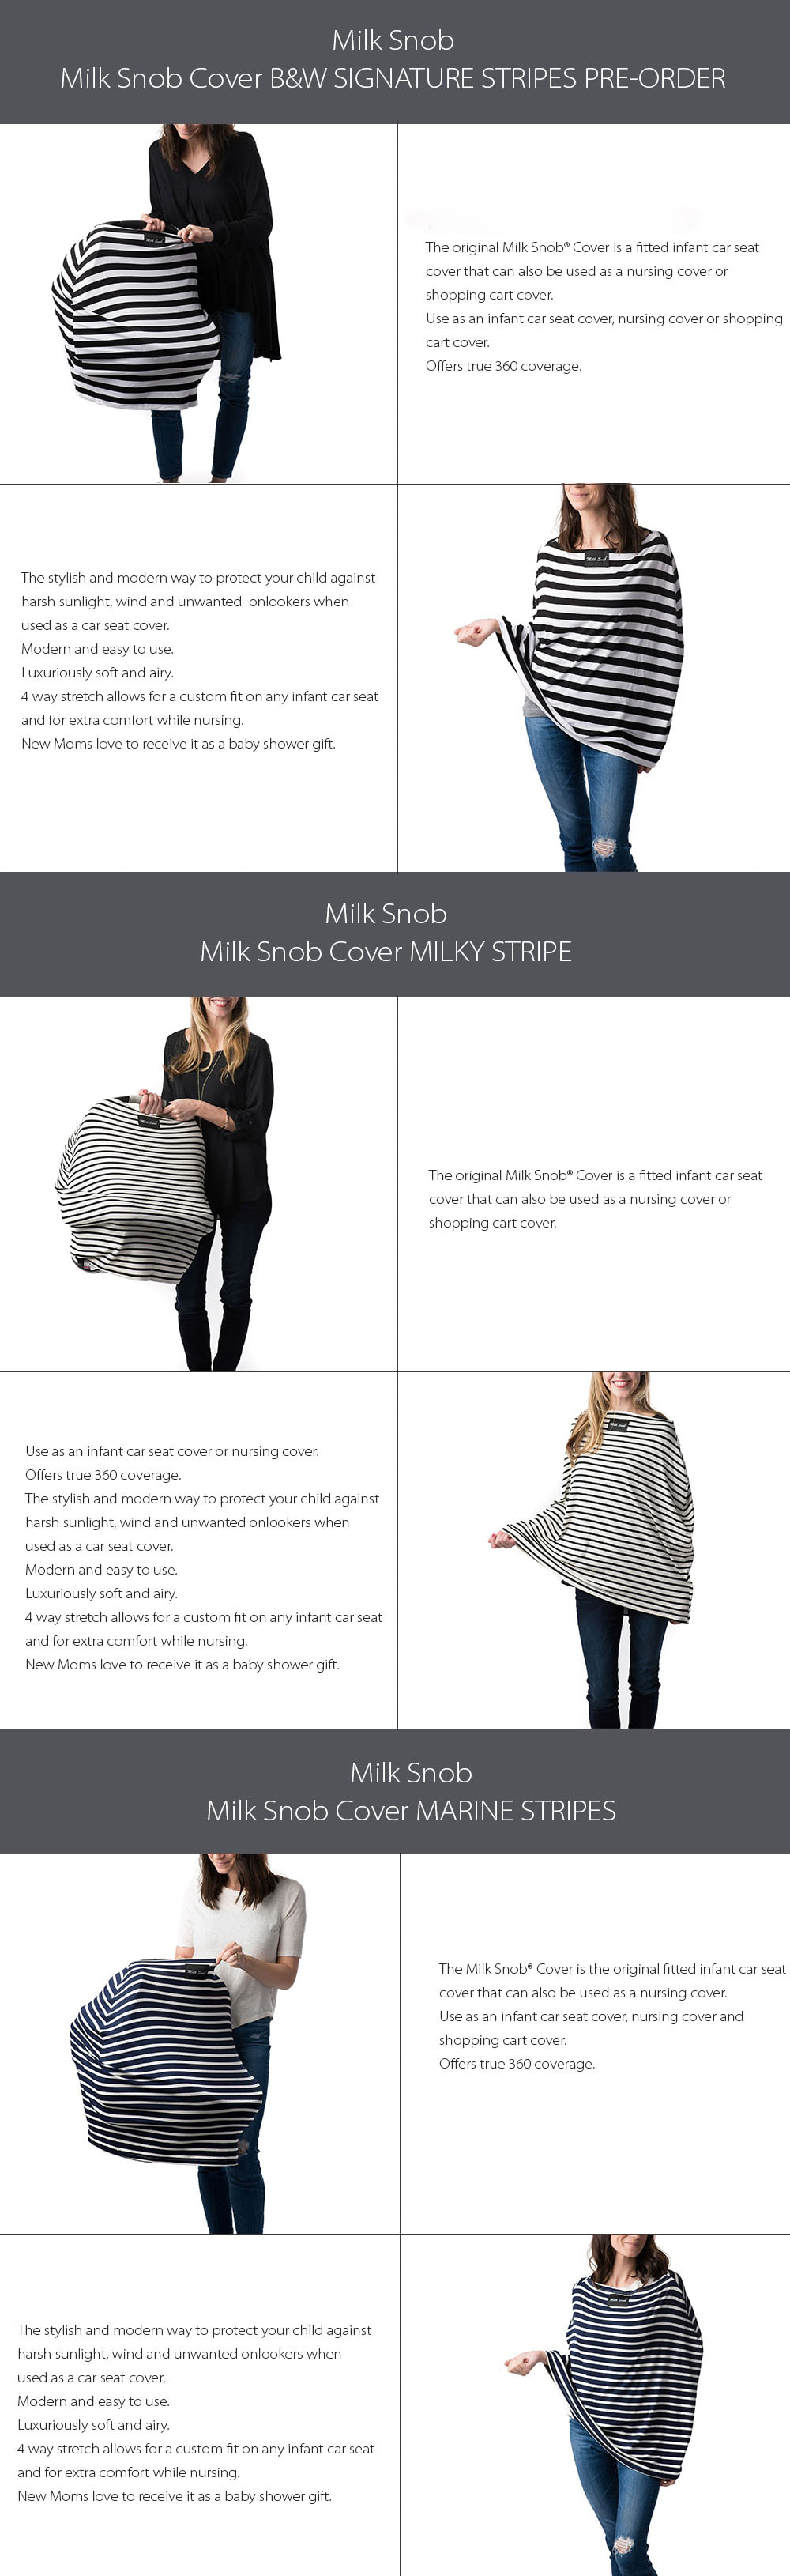 Milk Snob Infant Car Seat Cover and Nursing Cover AS SEEN ON SHARK TANK